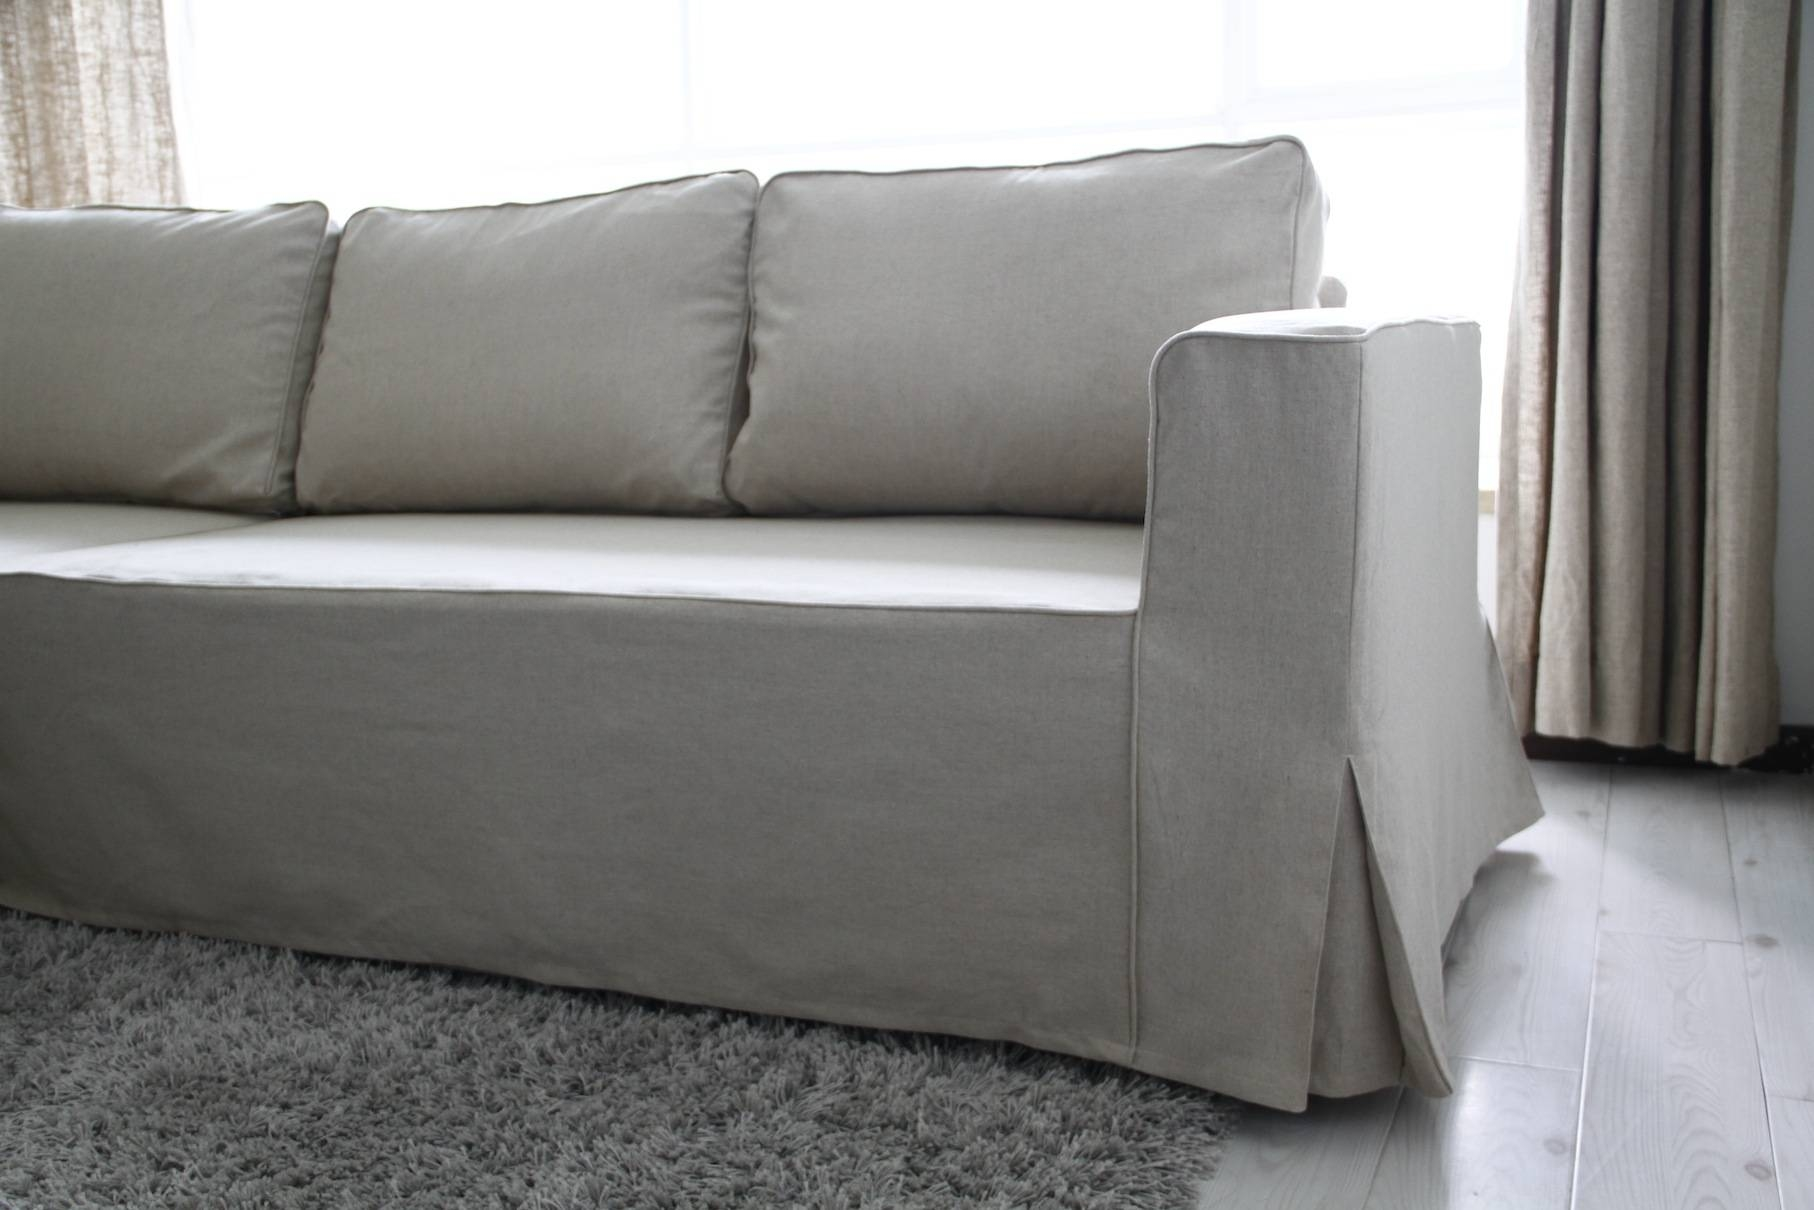 Individual Couch Seat Cushion Covers - Velcromag pertaining to Individual Couch Seat Cushion Covers (Image 13 of 15)